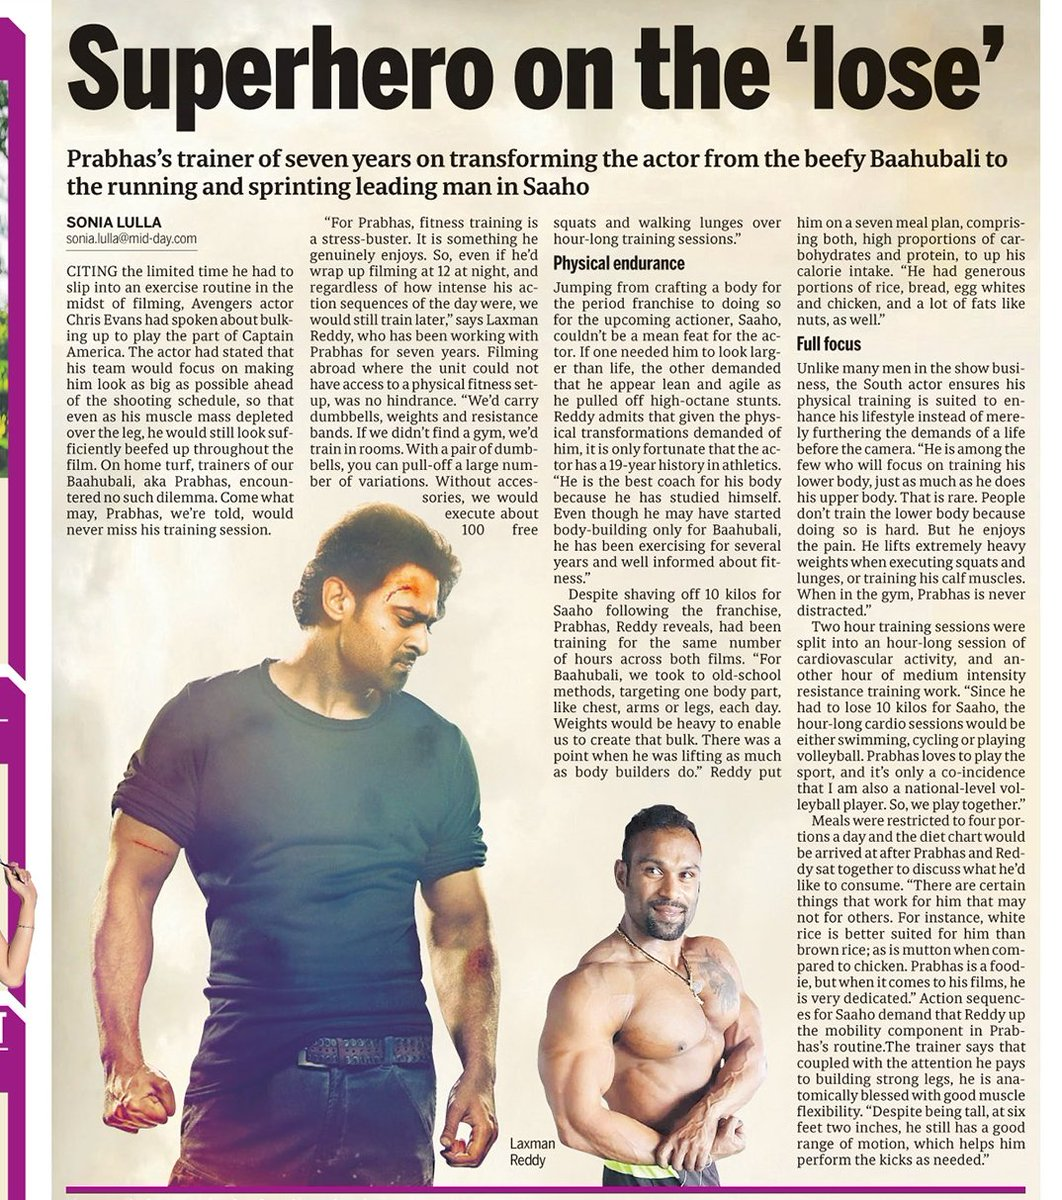 """#Prabhas in gym is never distracted. Even after 12 AM shoot he is there. He is best coach of himself he studied him well. Guys do upper part body fitness he do lower too. Its painful. He might have lifted weights equivalent to body bulider  Despite 62"""" his motion isnt restricted <br>http://pic.twitter.com/RA5oFMzBJg"""